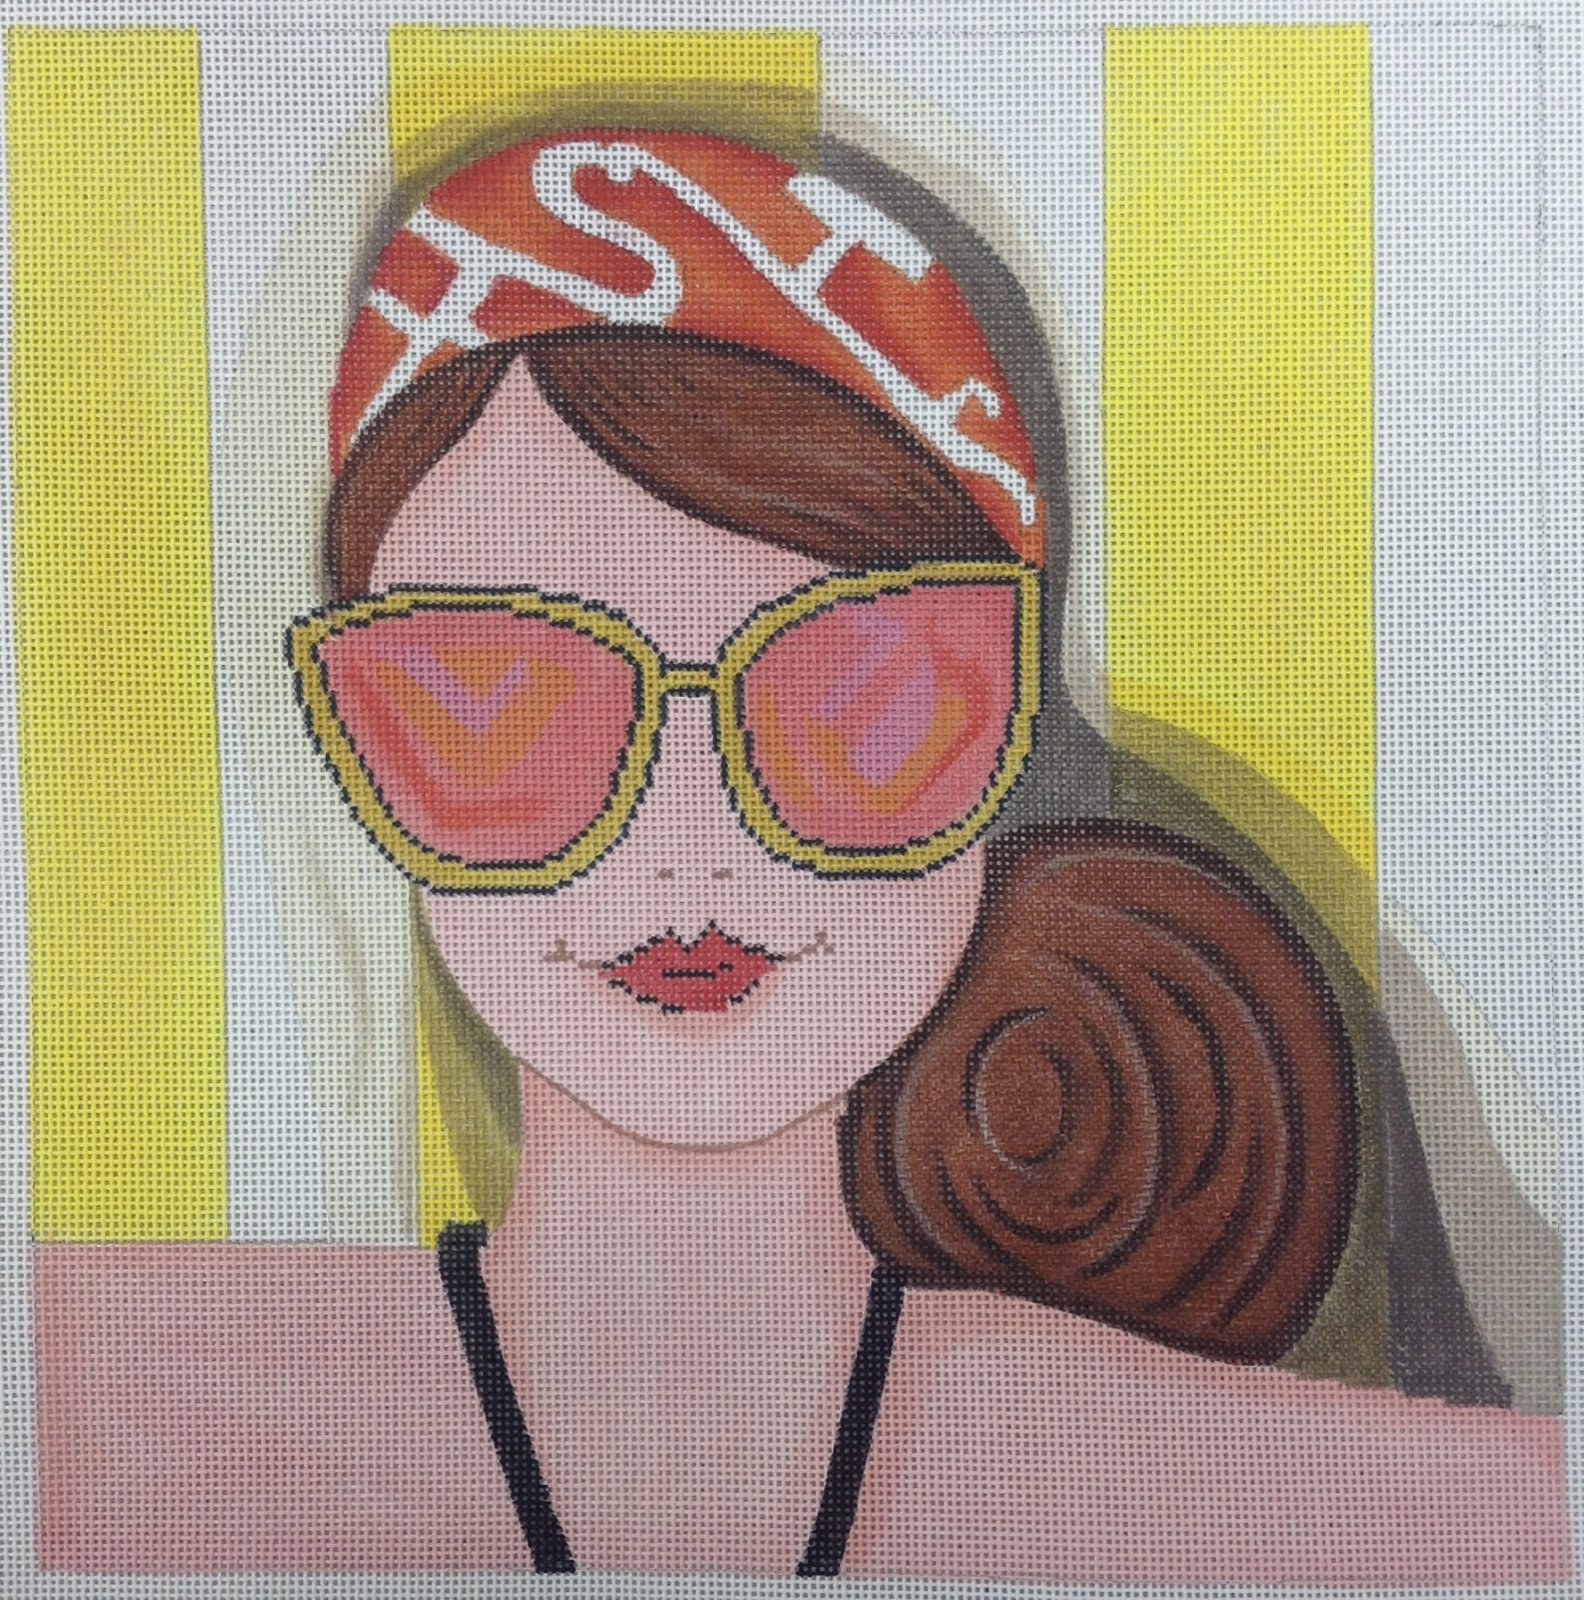 lady in sunglasses on towel